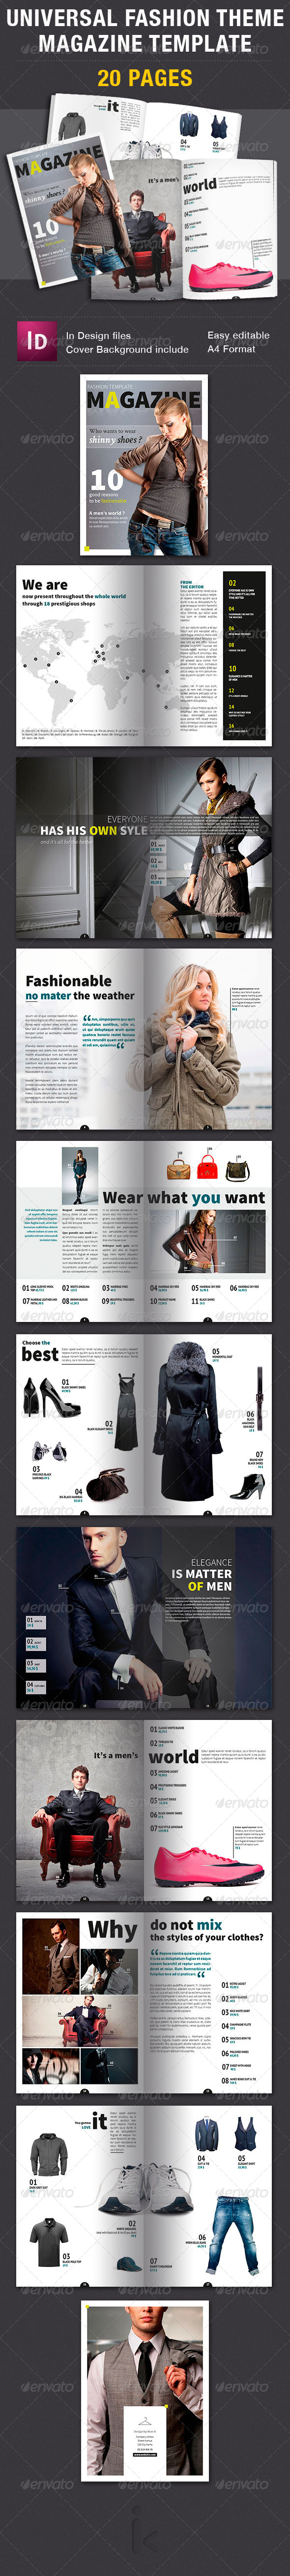 Universal Fashion Theme Magazine Template - Magazines Print Templates